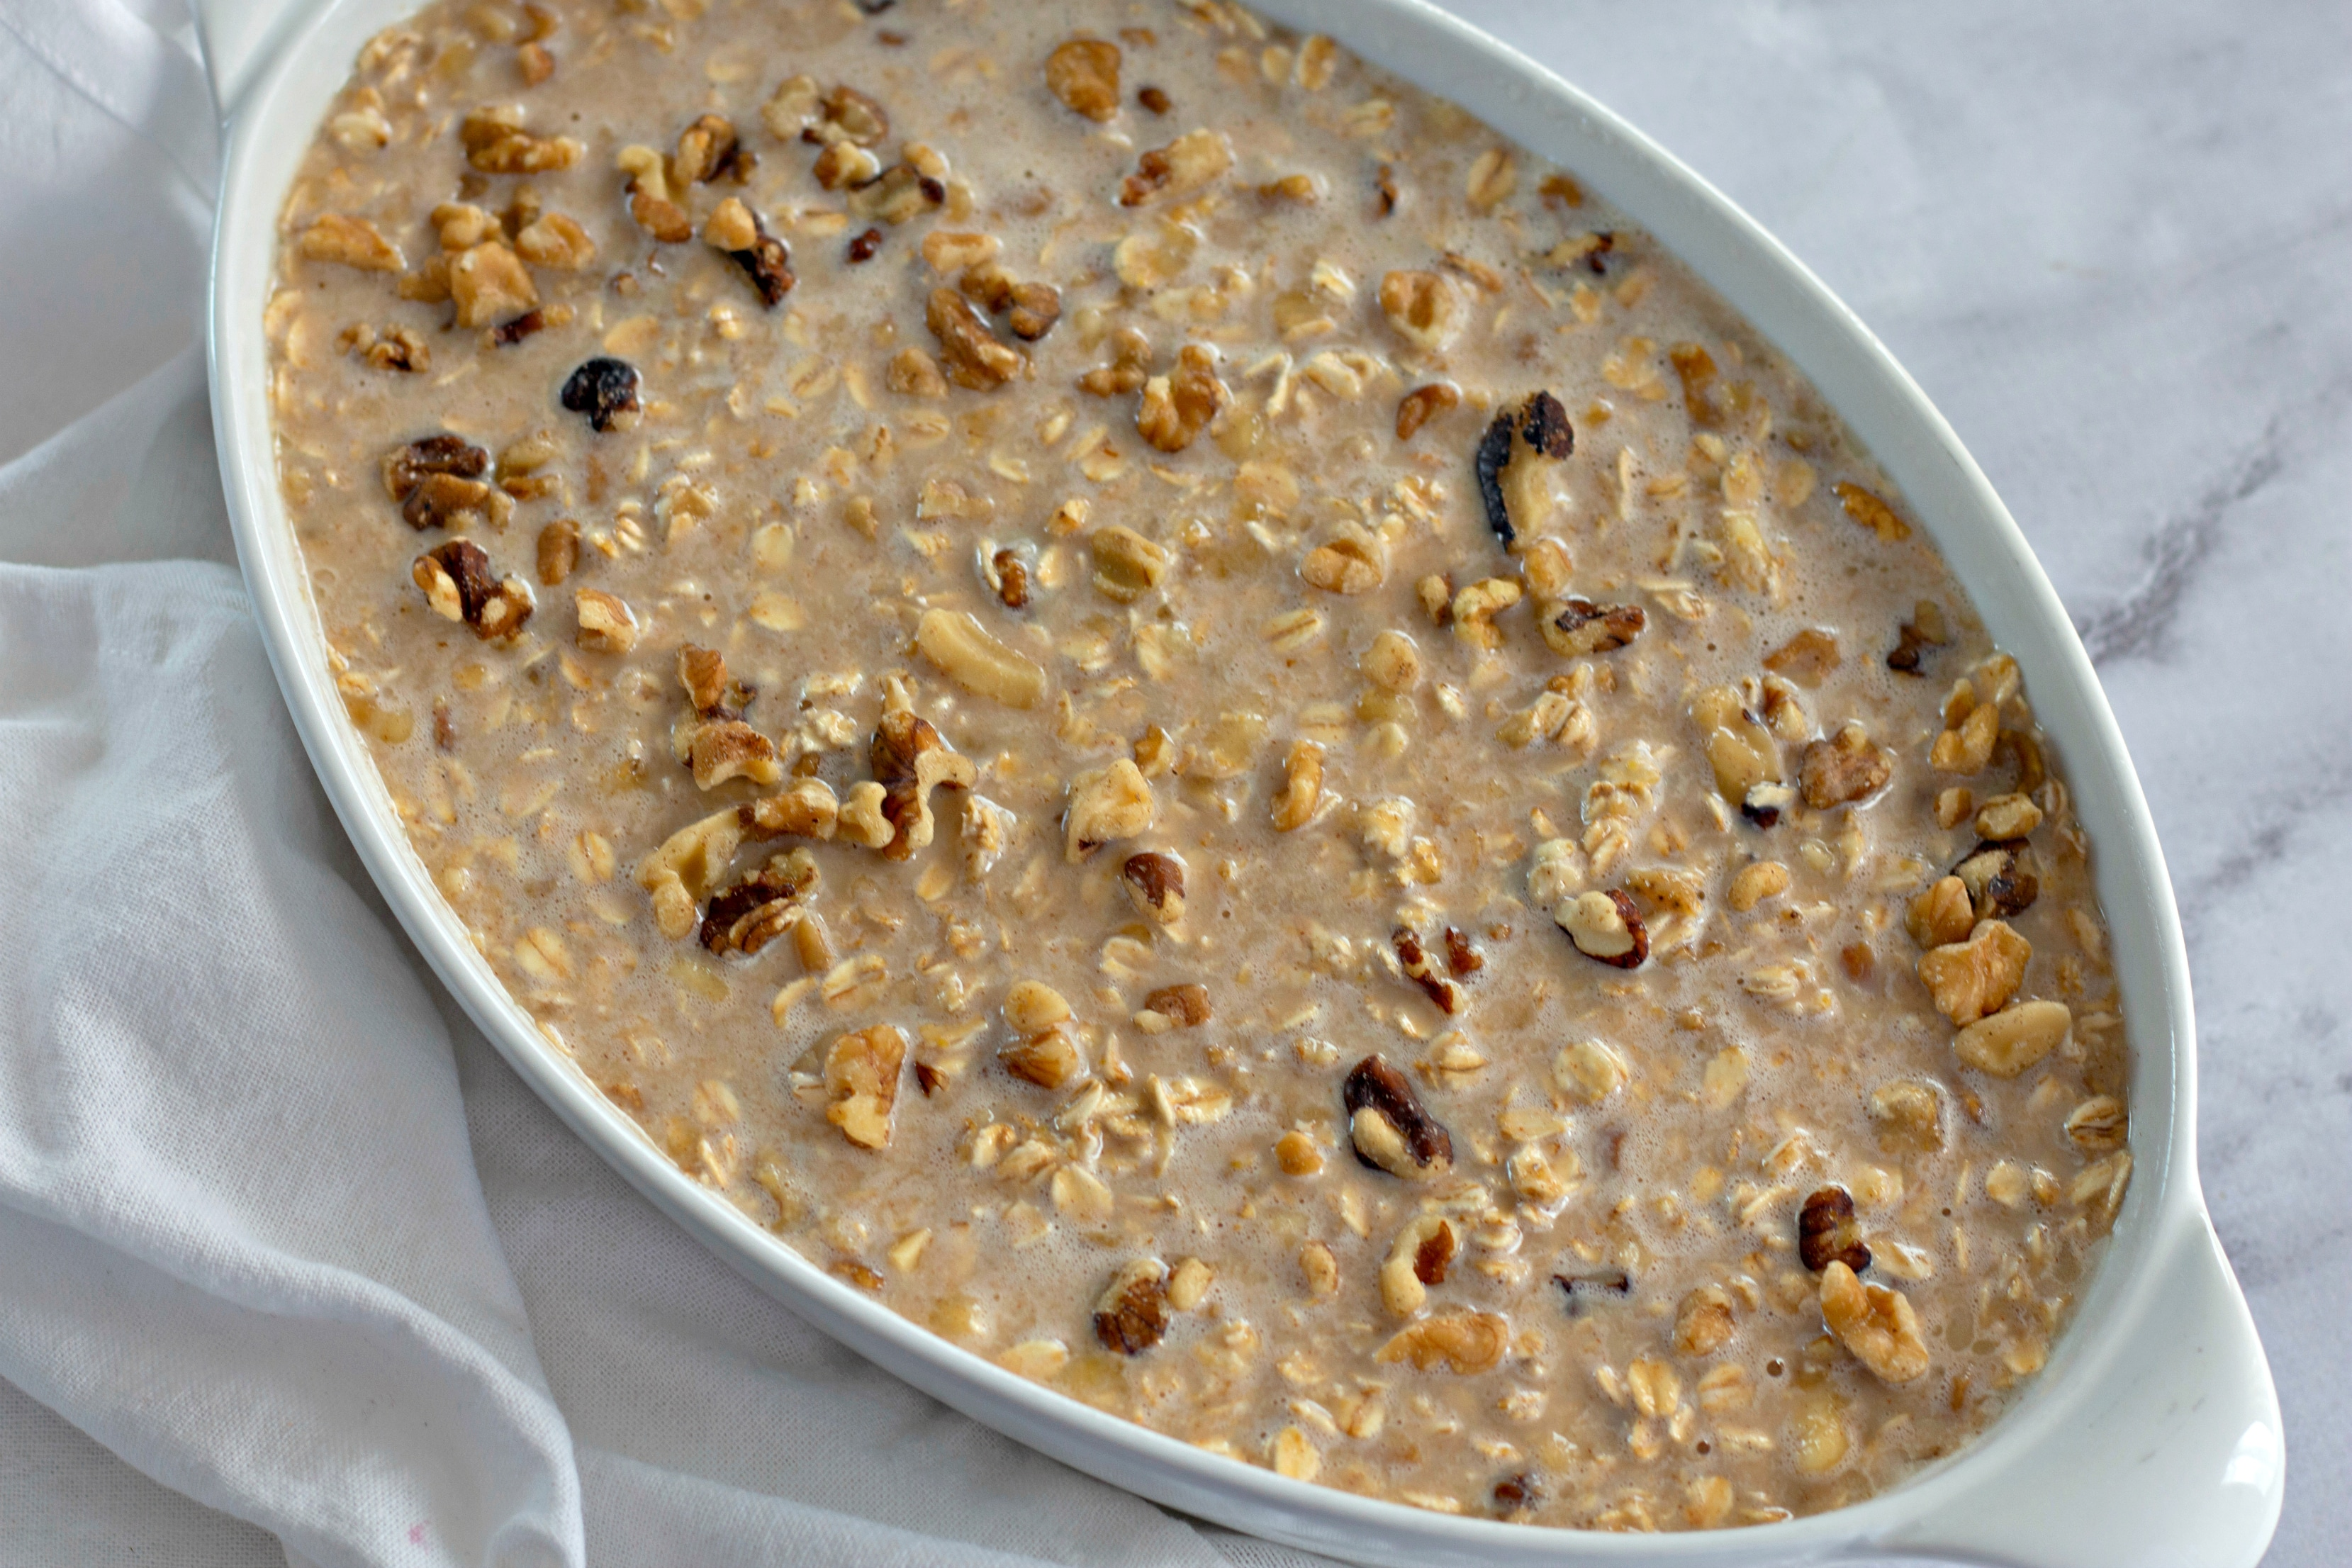 baked banana bread oatmeal prepped for the oven in white ceramic baking dish